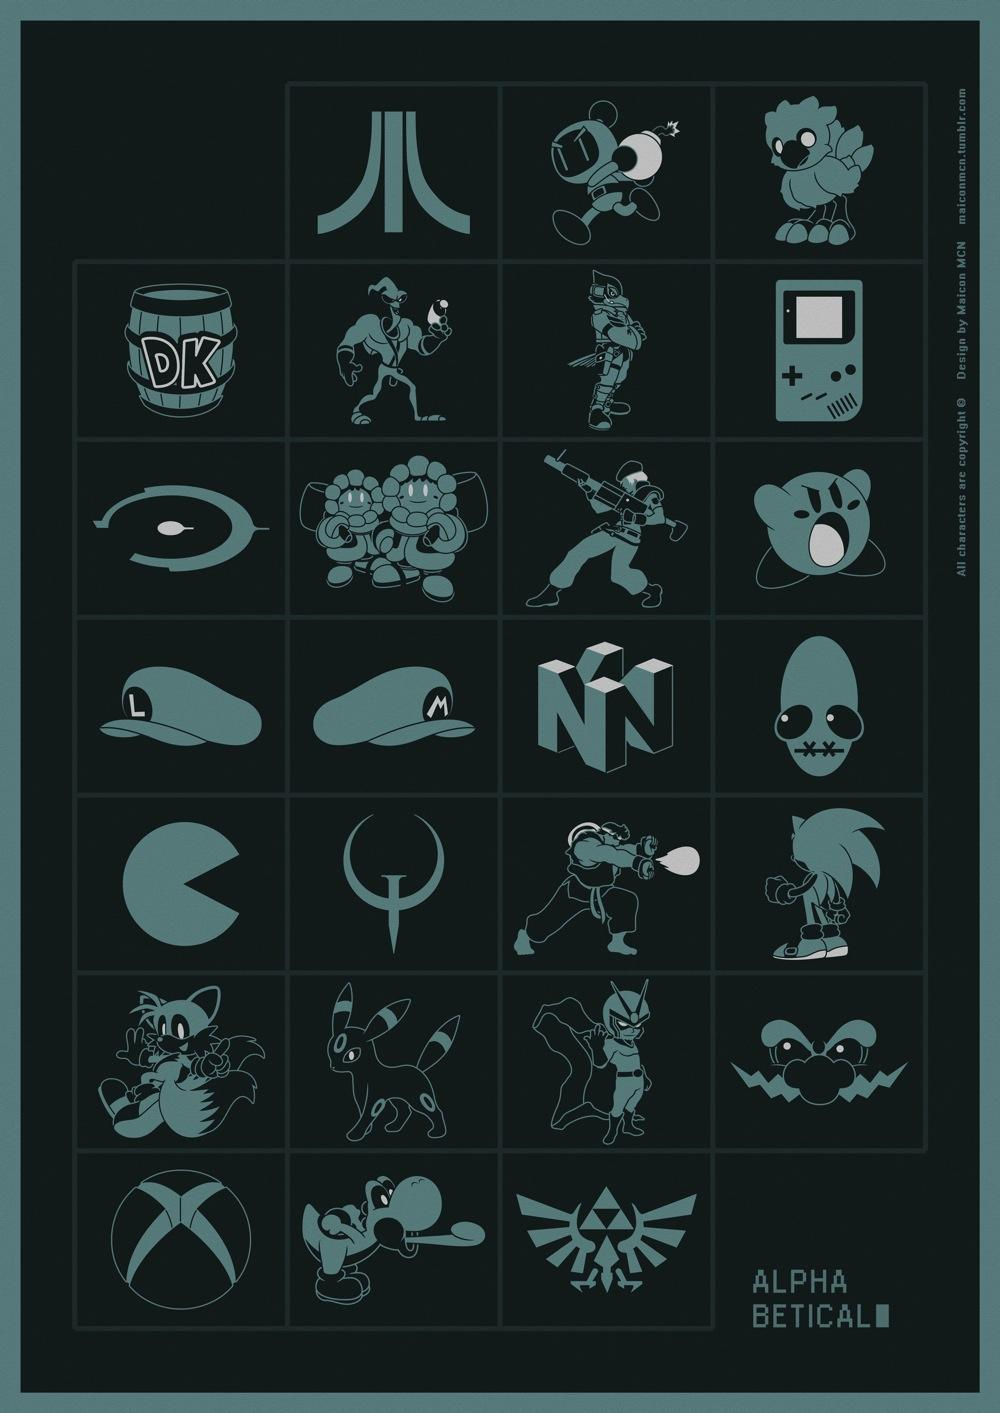 Video Game Alphabet Poster Tests Your Gaming Knowledge - News - GameTyrant